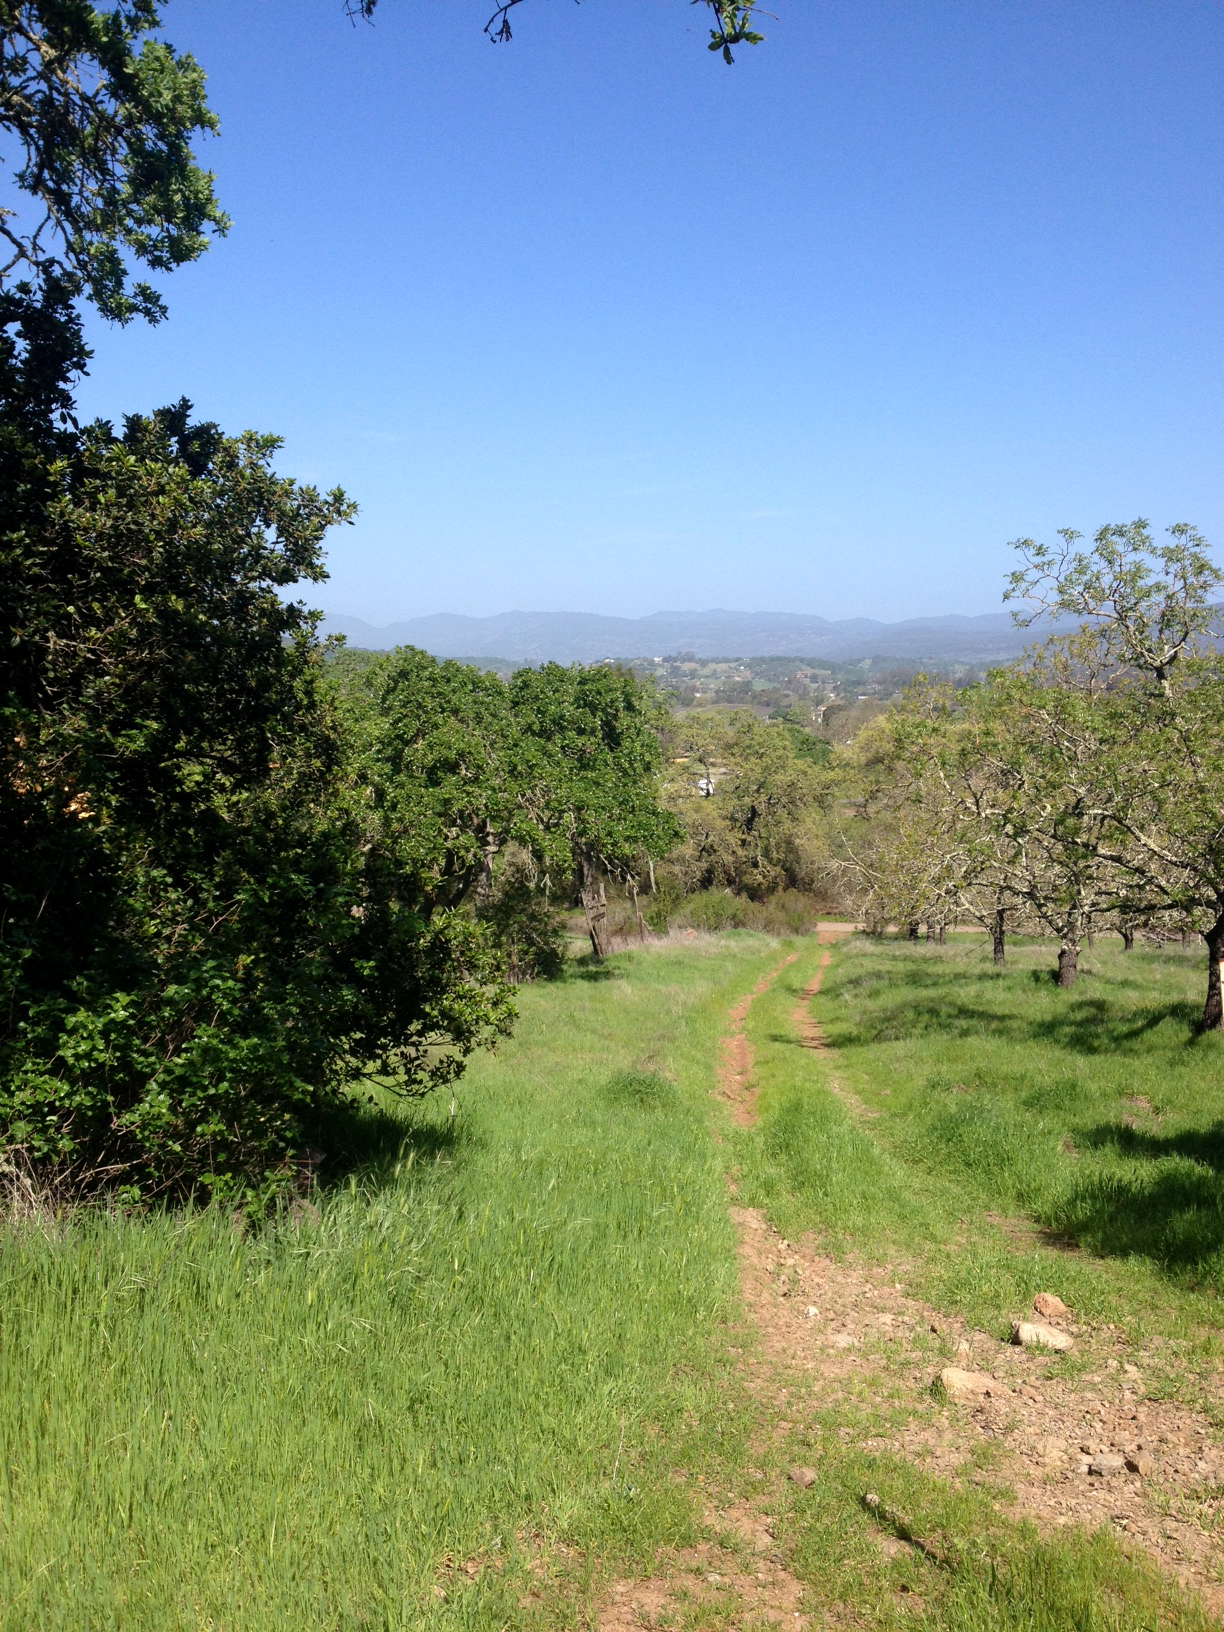 View from a recent hike on Saturday in Napa's  Skyline Wilderness Park